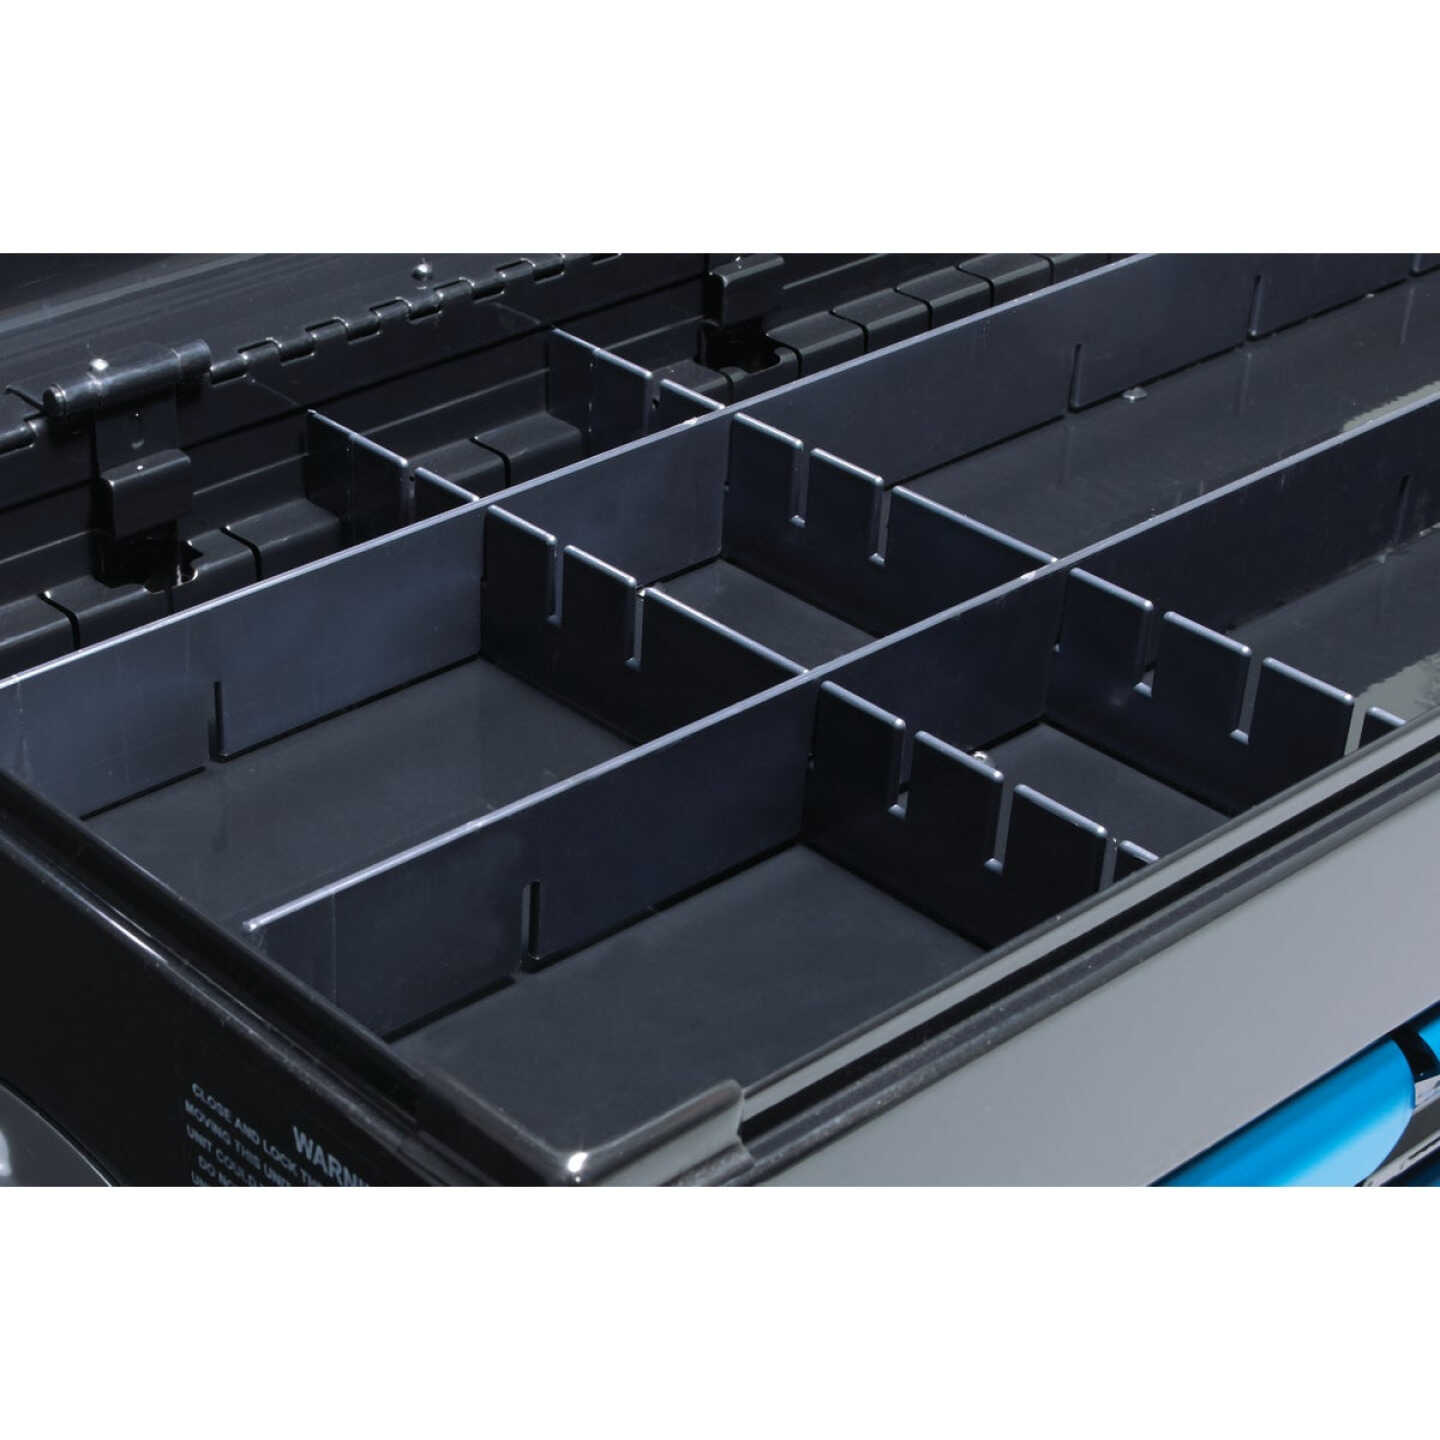 Channellock 26 In. 5-Drawer Tool Roller Cabinet Image 8